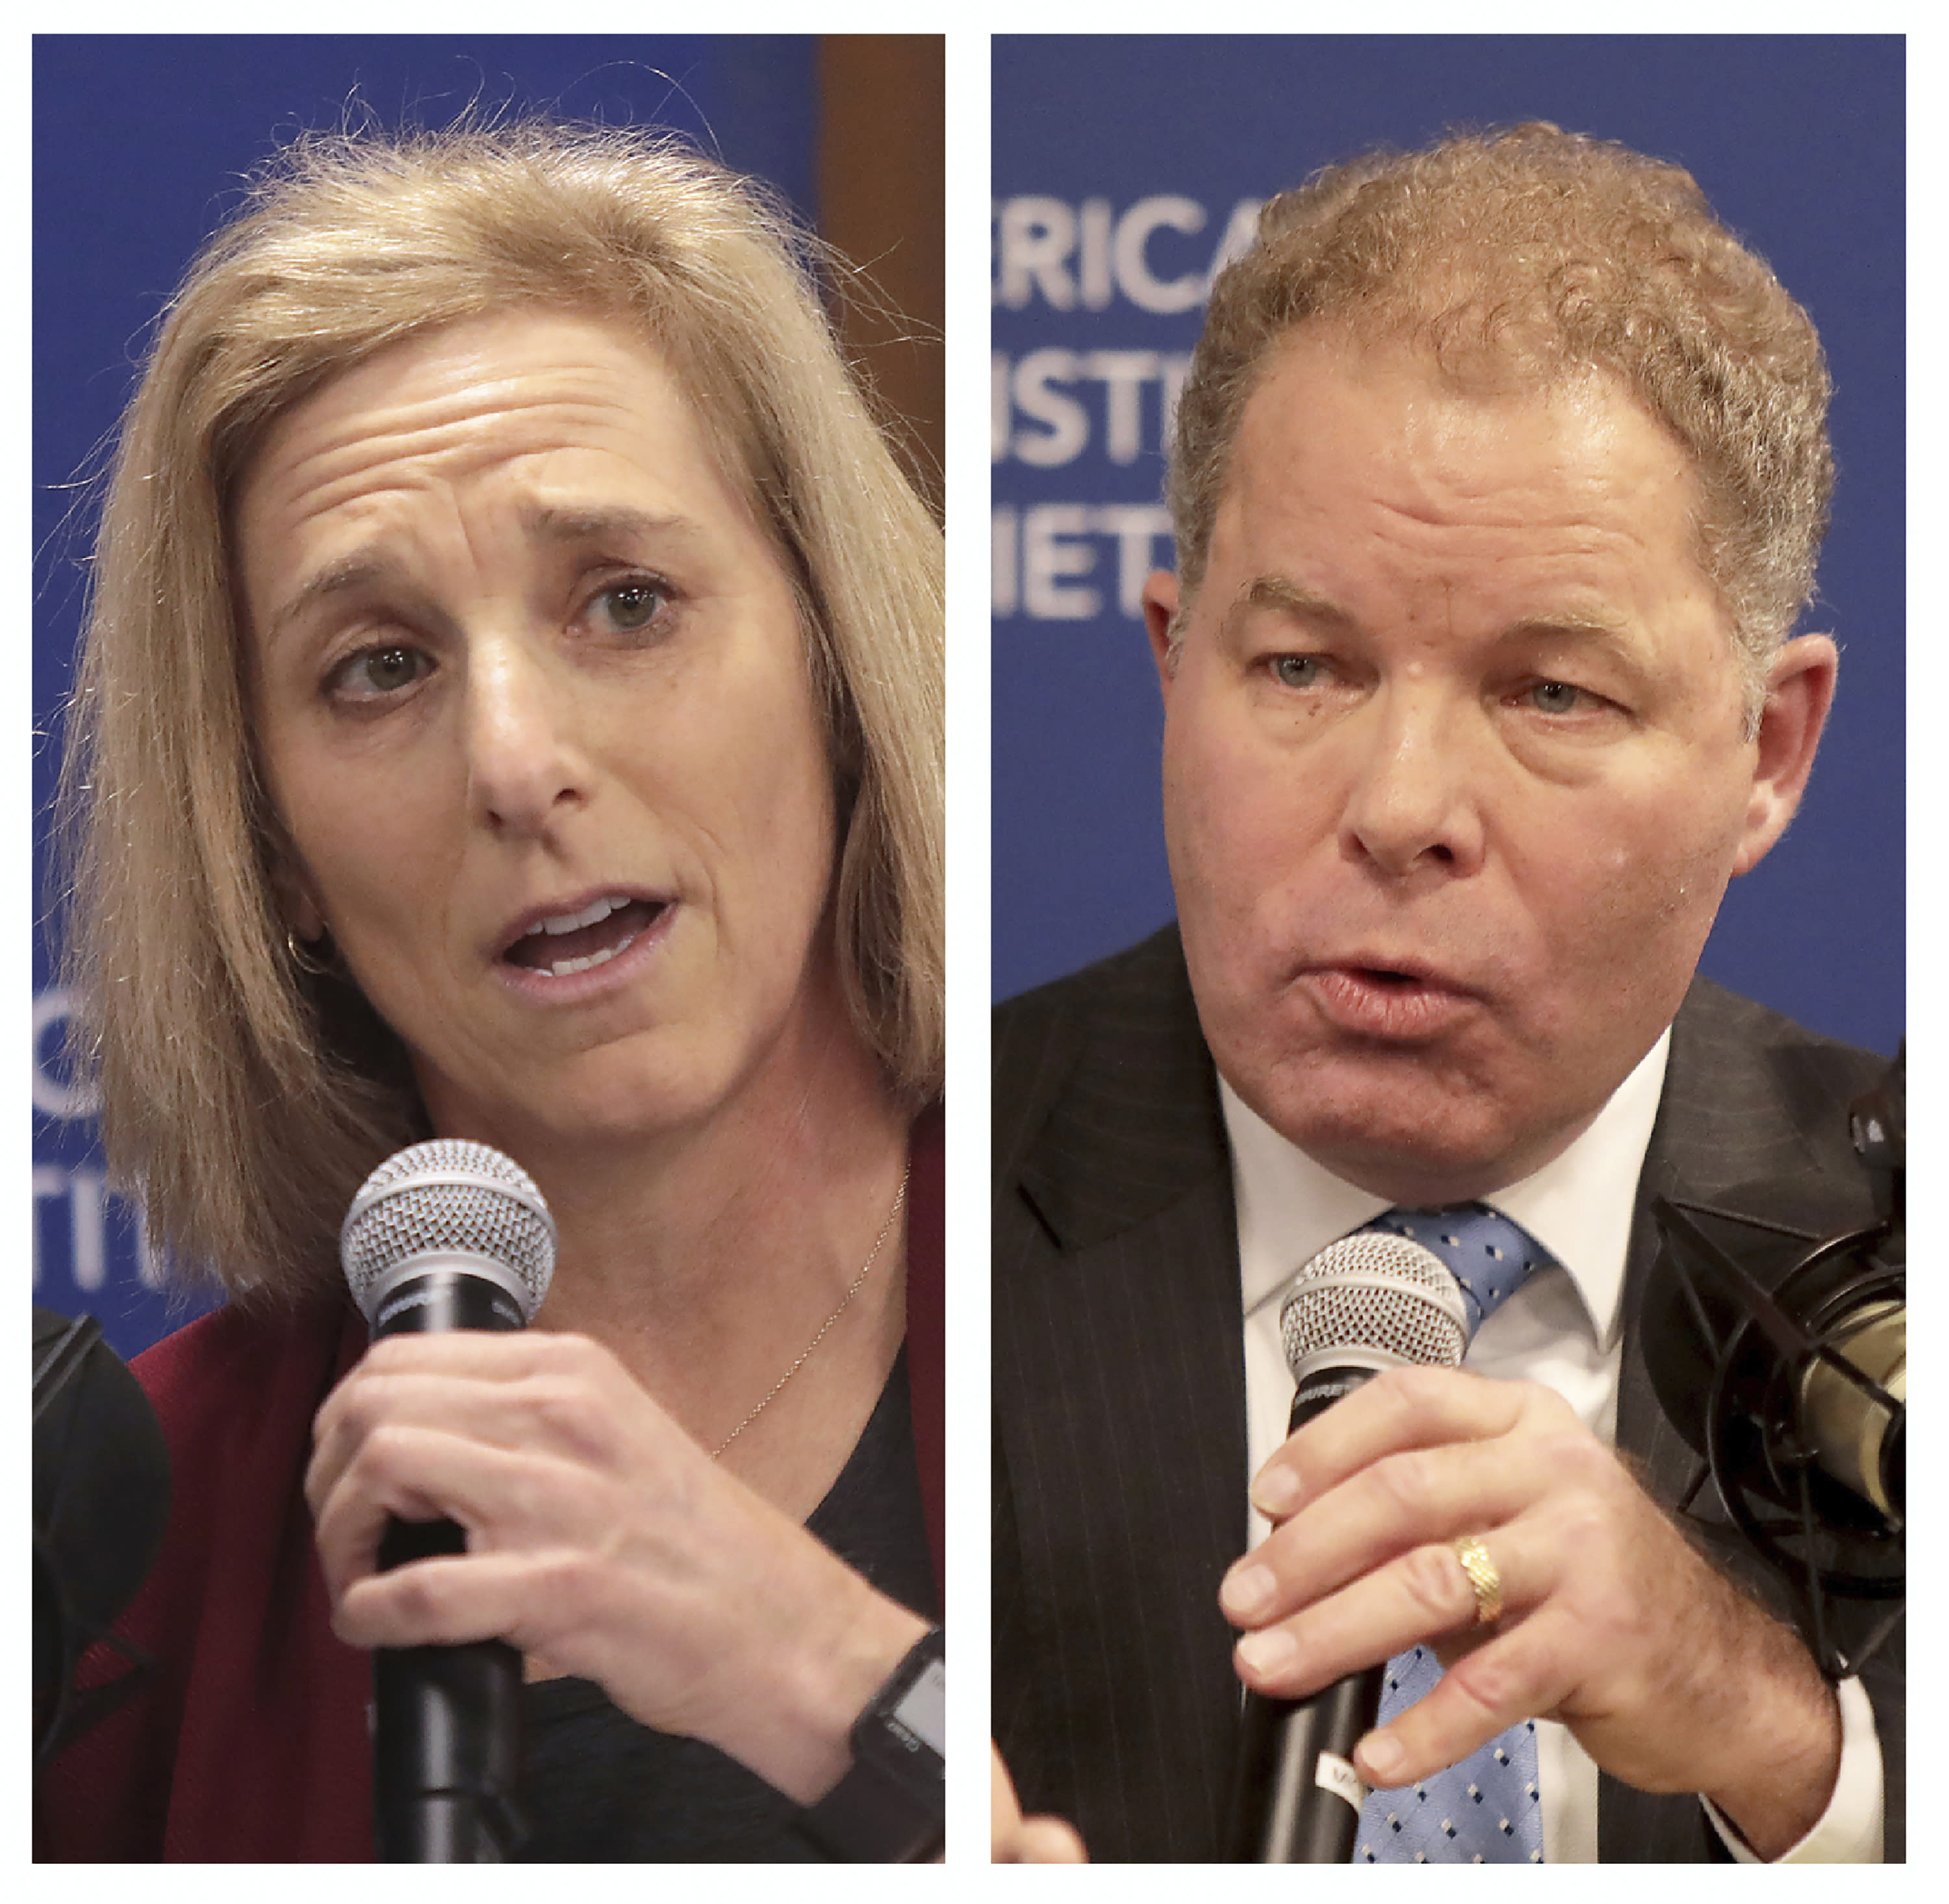 FILE - This combination of Nov. 19, 2019 file photos shows Dane County Circuit Court Judge Jill Karofsky, left, and Wisconsin Supreme Court Justice Daniel Kelly, during a candidate's forum for a seat on the state Supreme Court. Clerks will begin counting ballots Monday, April 13, 2020, nearly a week after votes were cast in Wisconsin's contentious Supreme Court race. (John Hart/Wisconsin State Journal via AP, File)